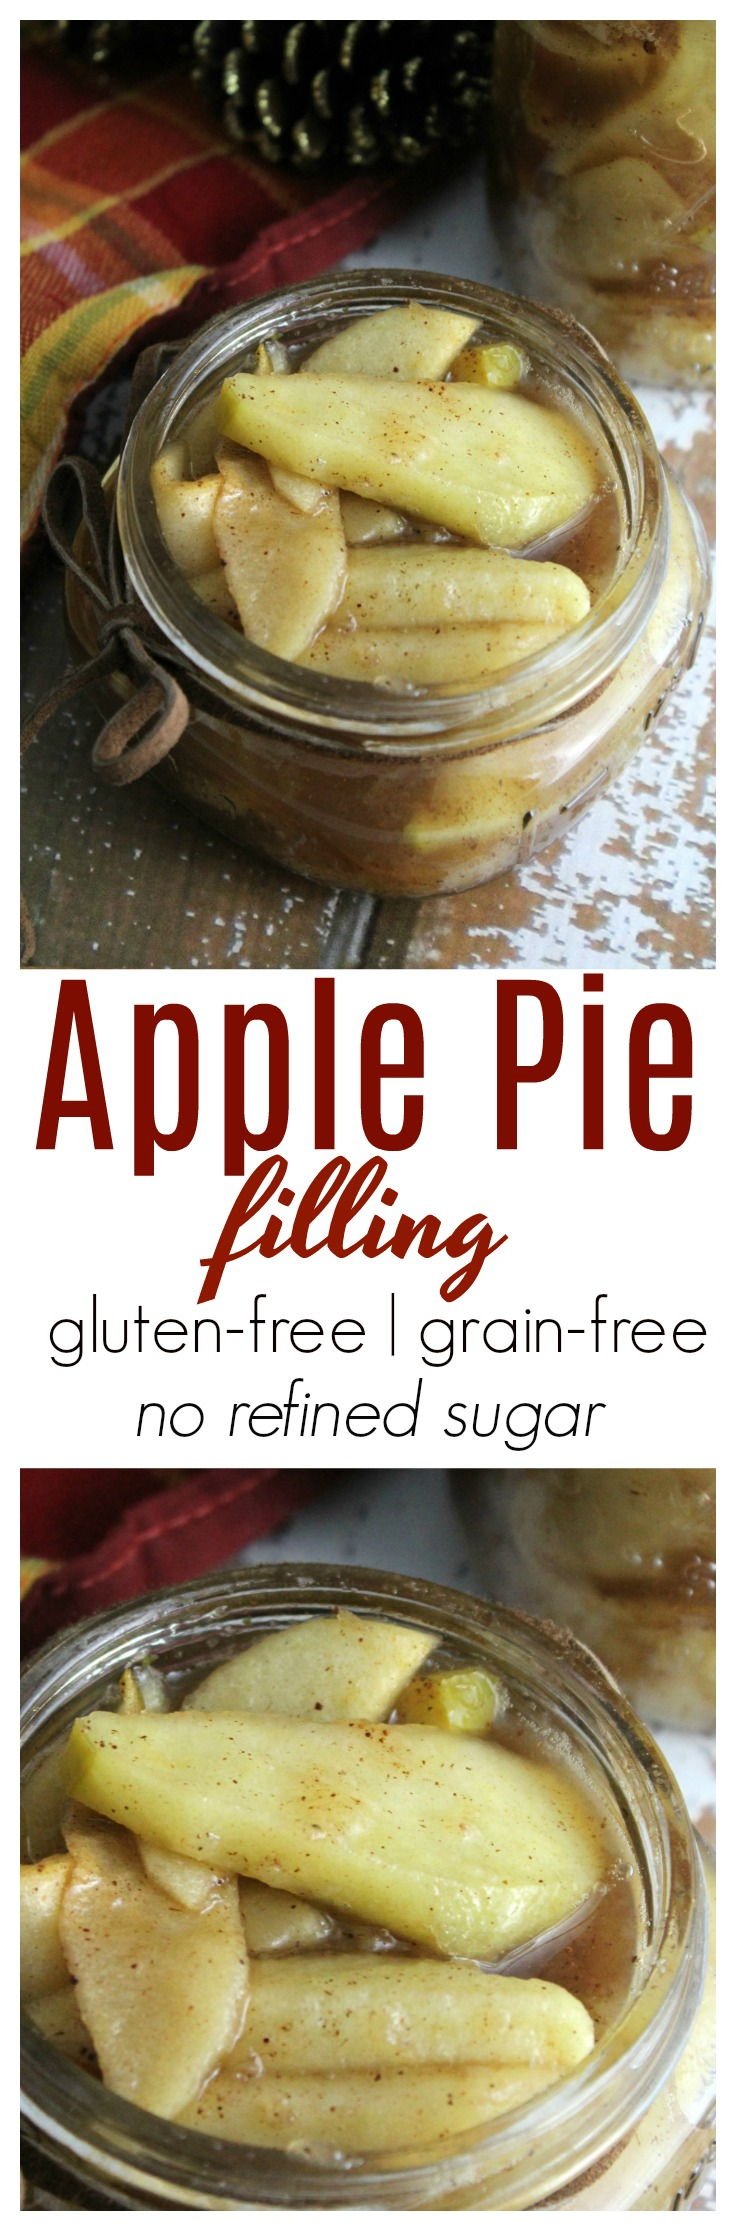 A deliciously easy recipe for homemade apple pie filling that doesn't rely on refined sugar! This filling is grain-free and comes together quickly!